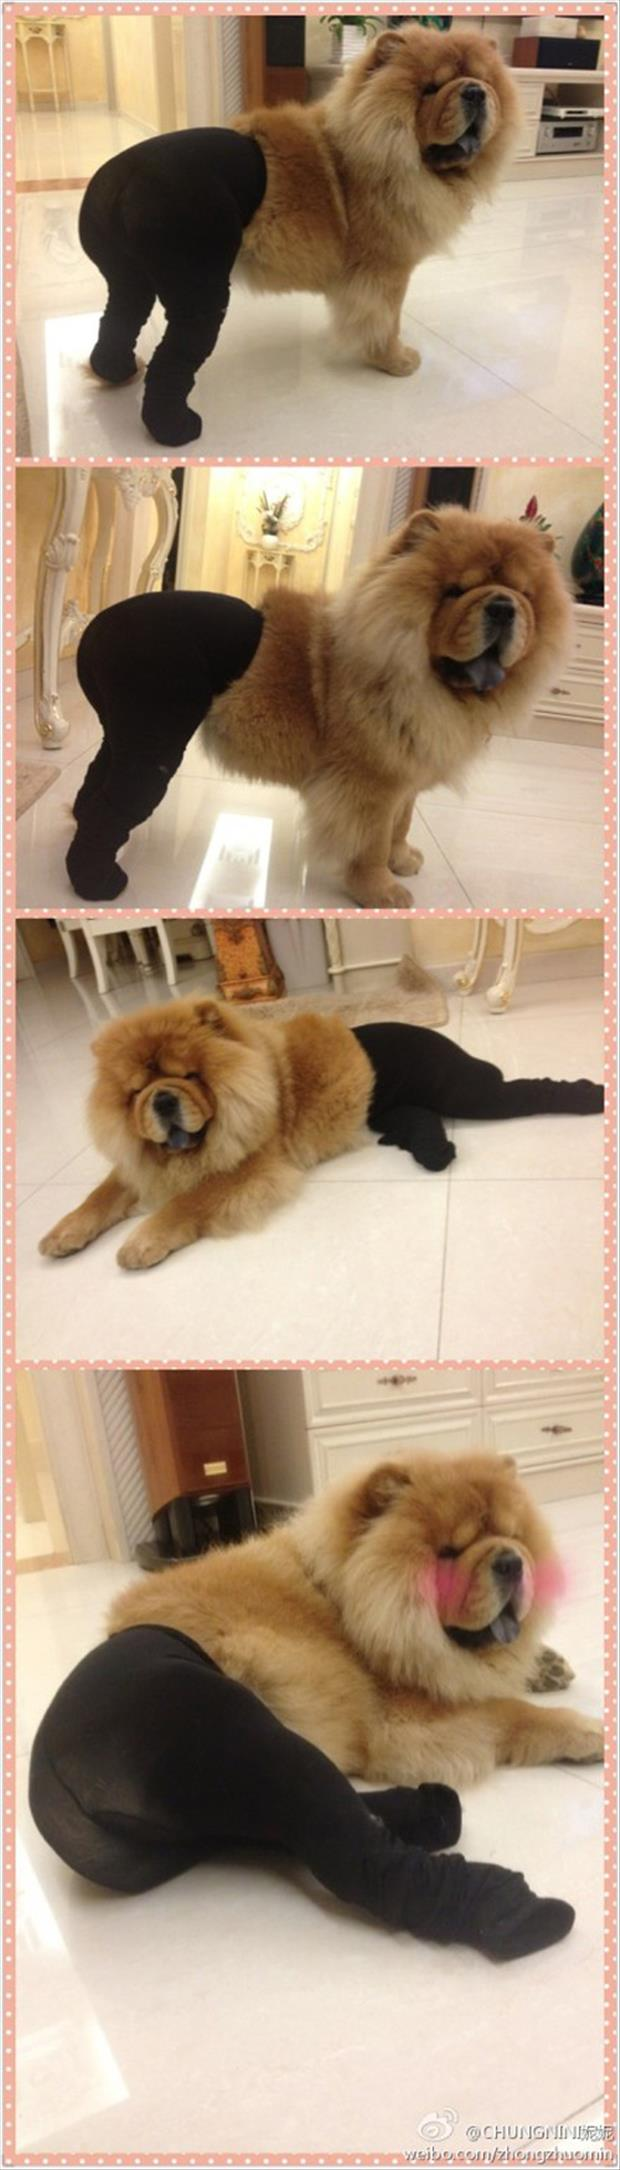 dogs wearing pantyhose meme (2)